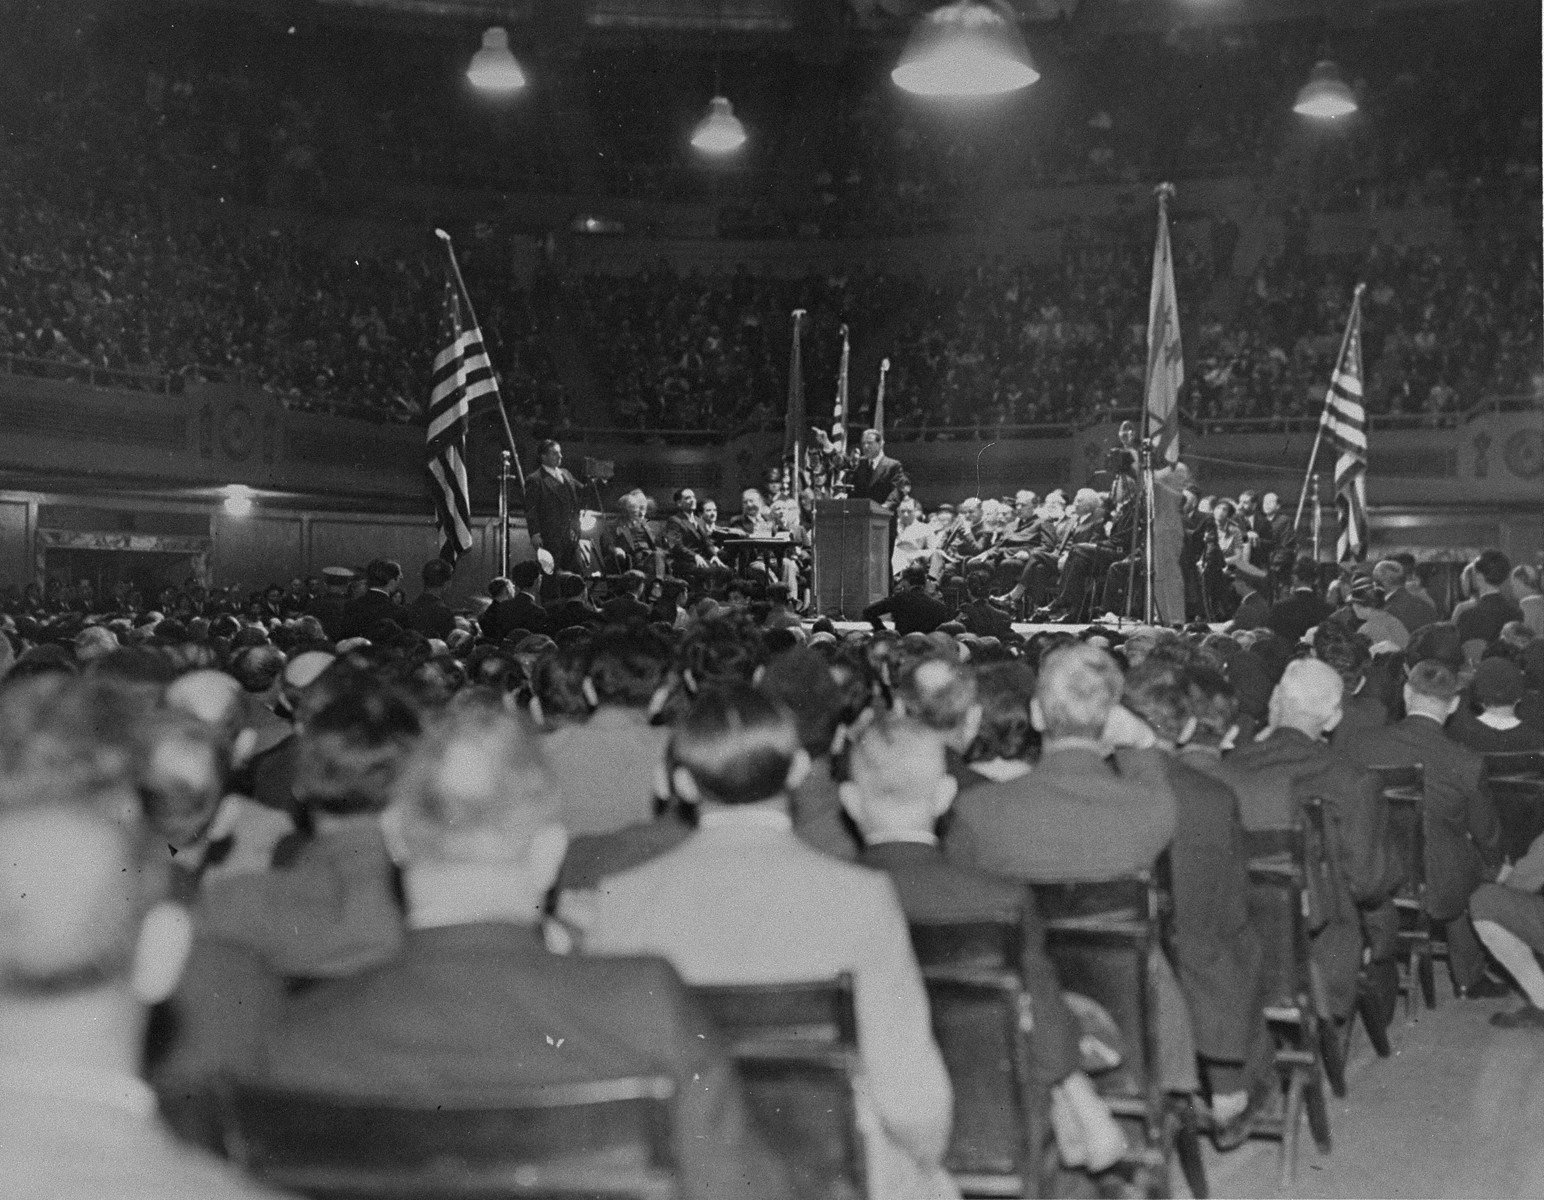 10,000 people listen to an address by Rabbi Stephen S. Wise at Public Hall in Cleveland during a mass meeting to protest against the Nazi persecution of German Jews.